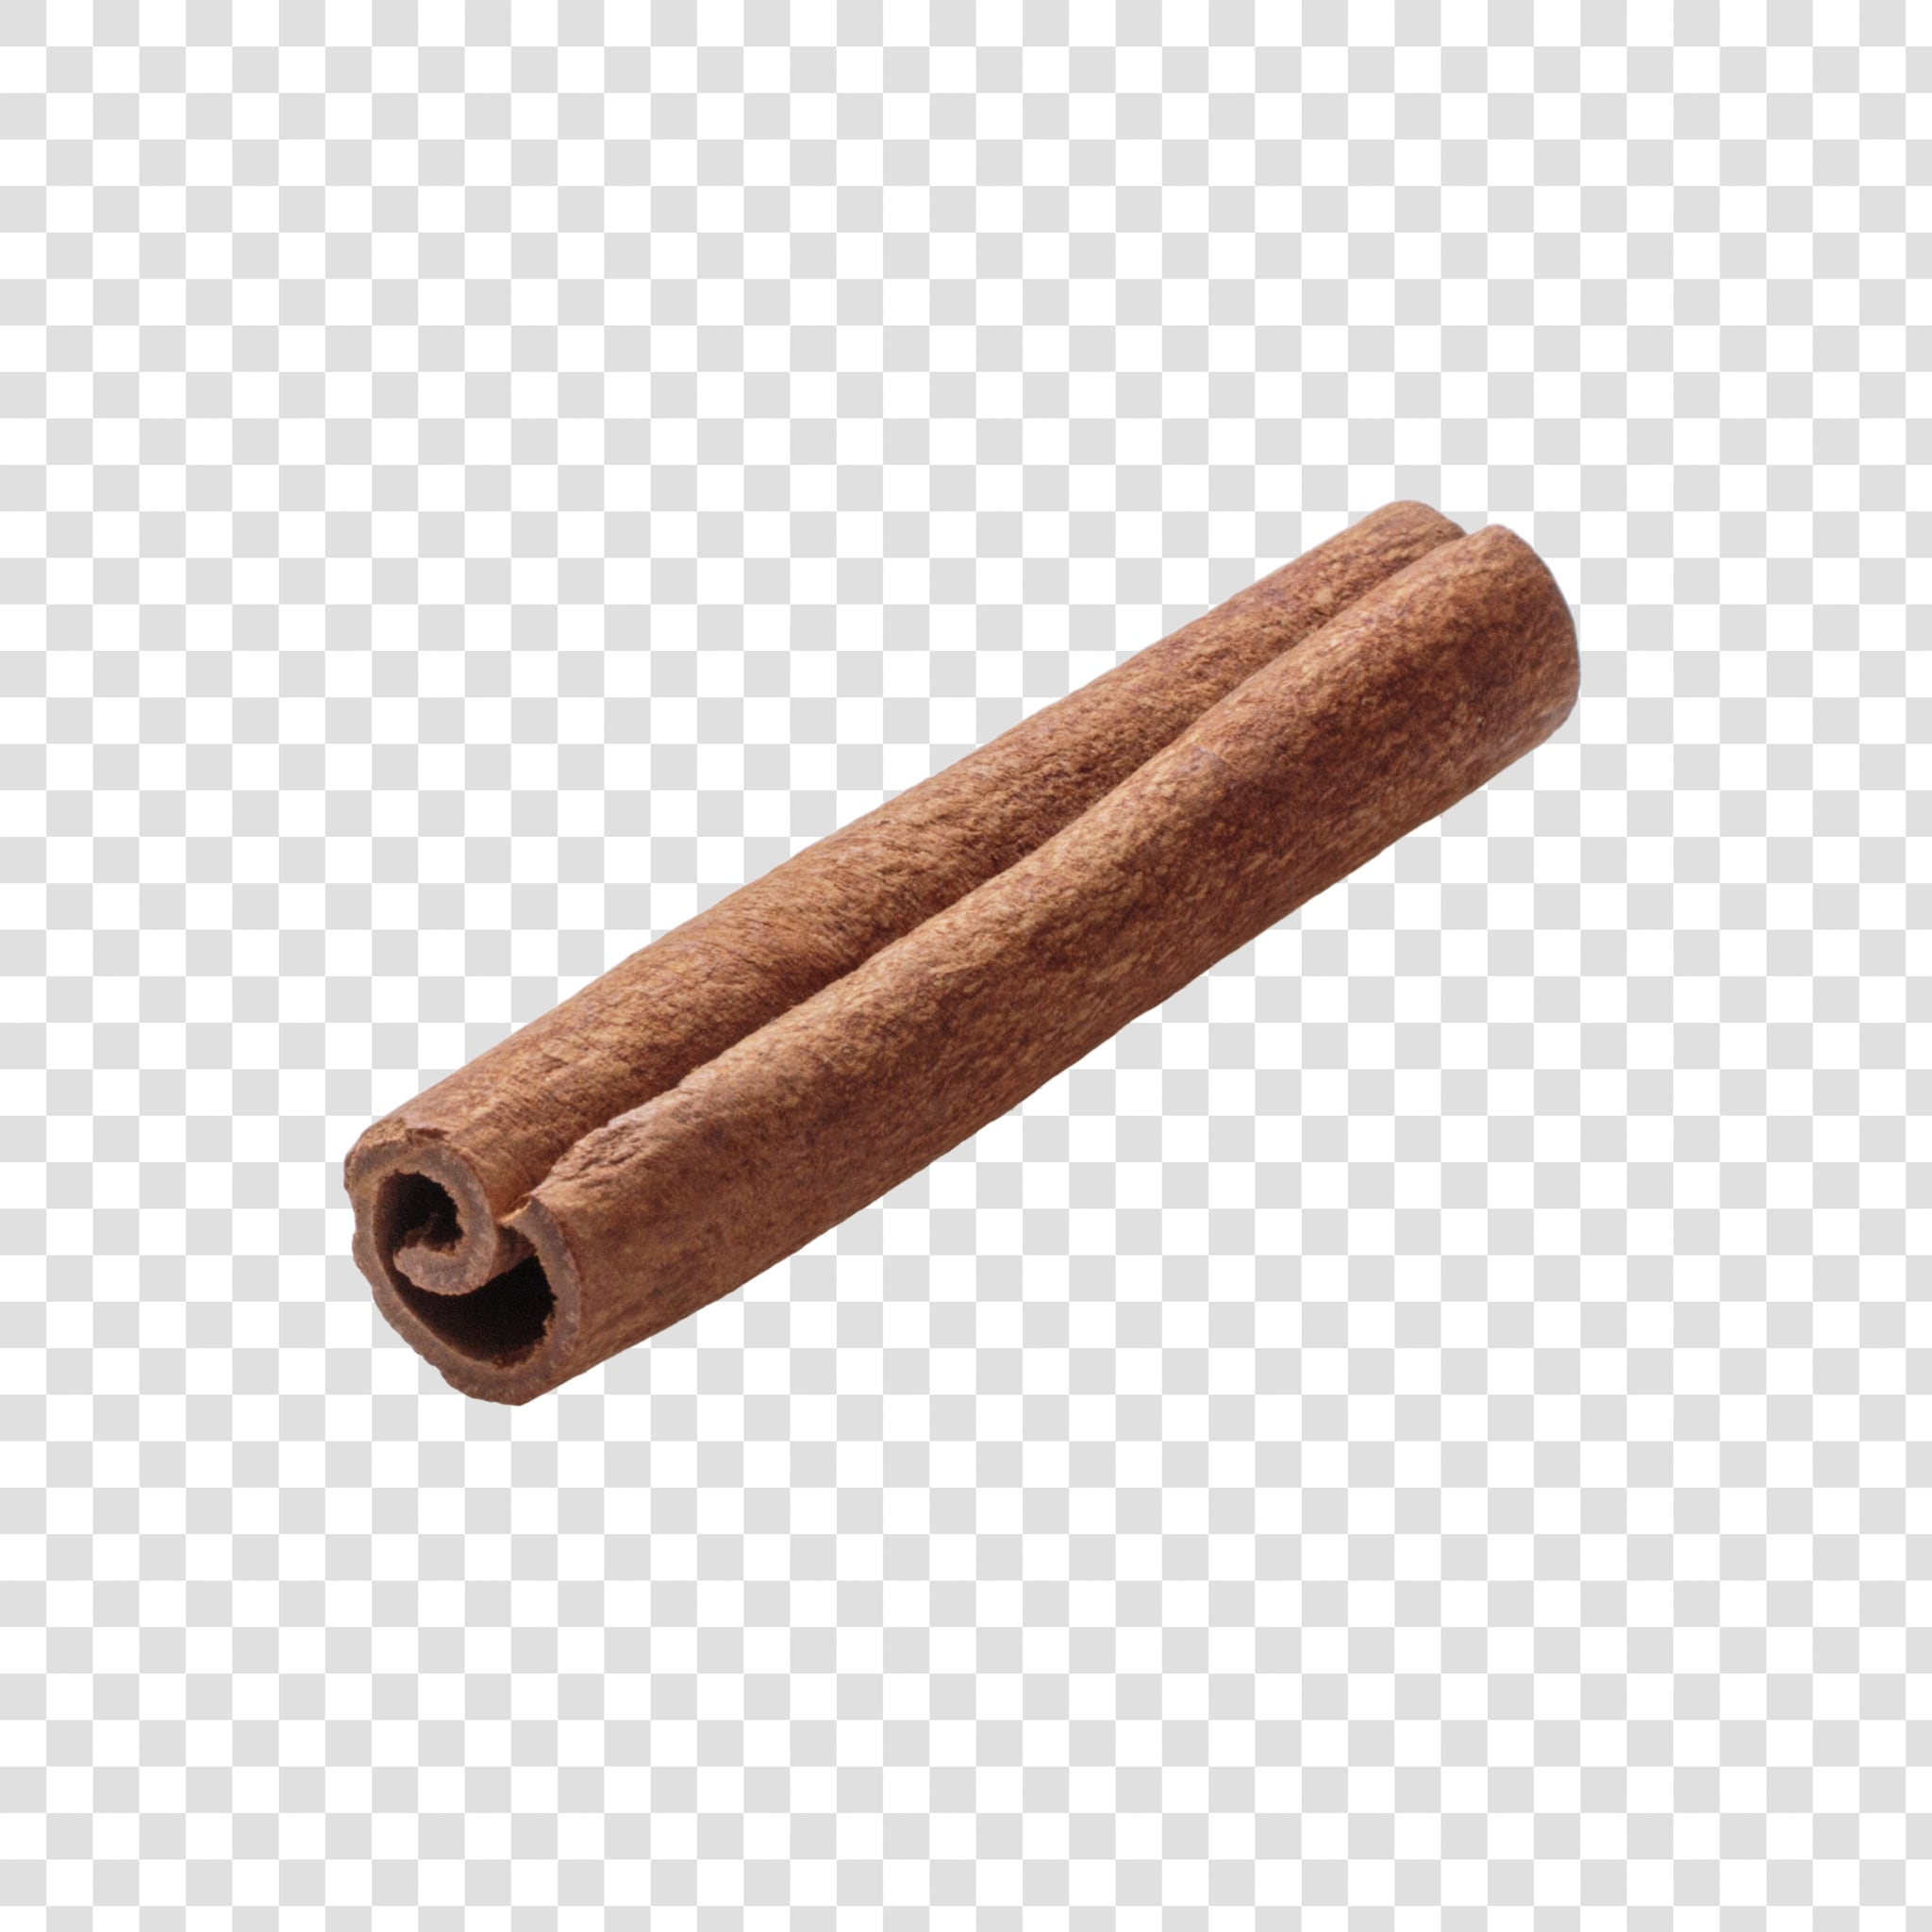 Cinnamon PSD image with transparent background